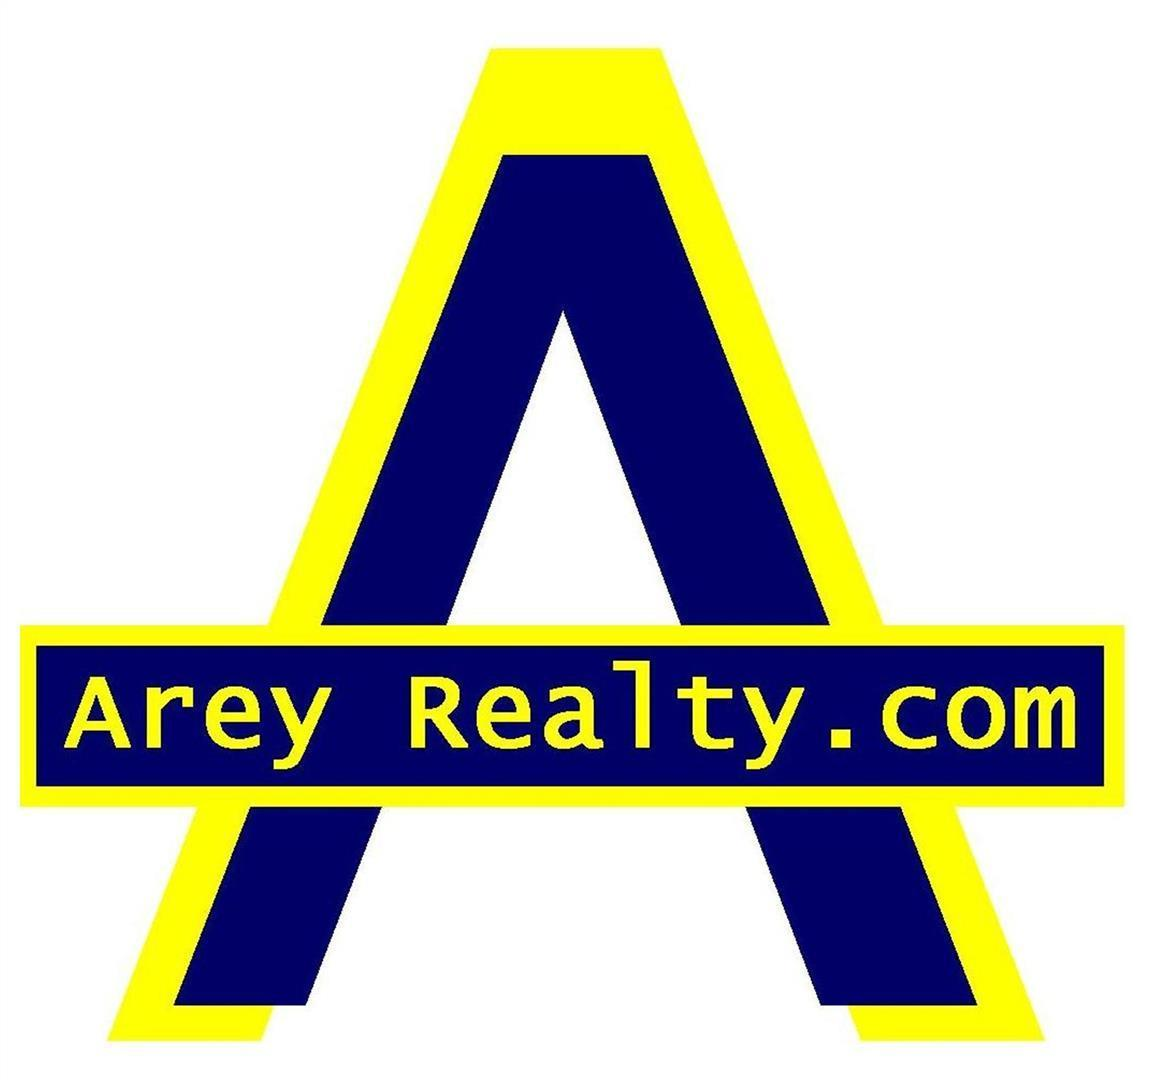 Arey Realty